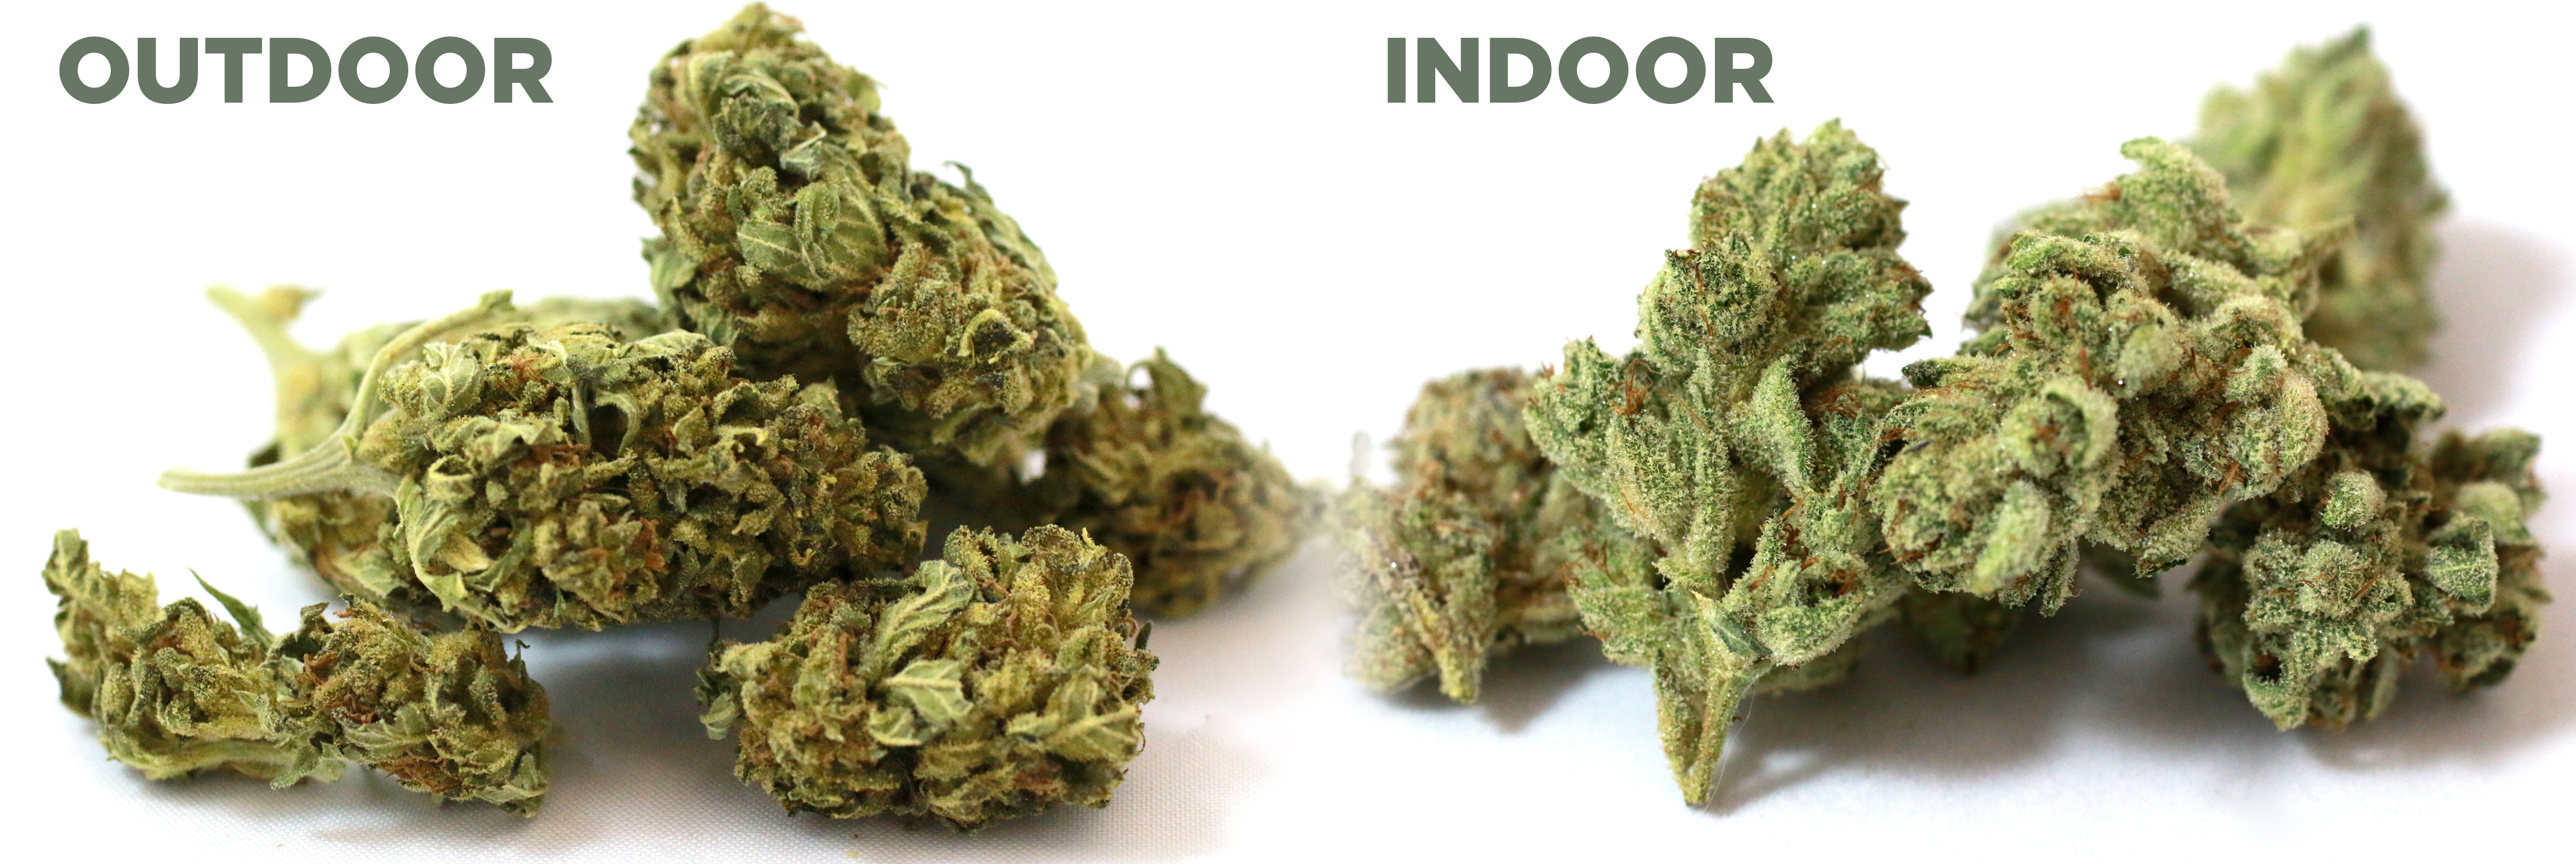 growing cannabis indoors vs outdoors